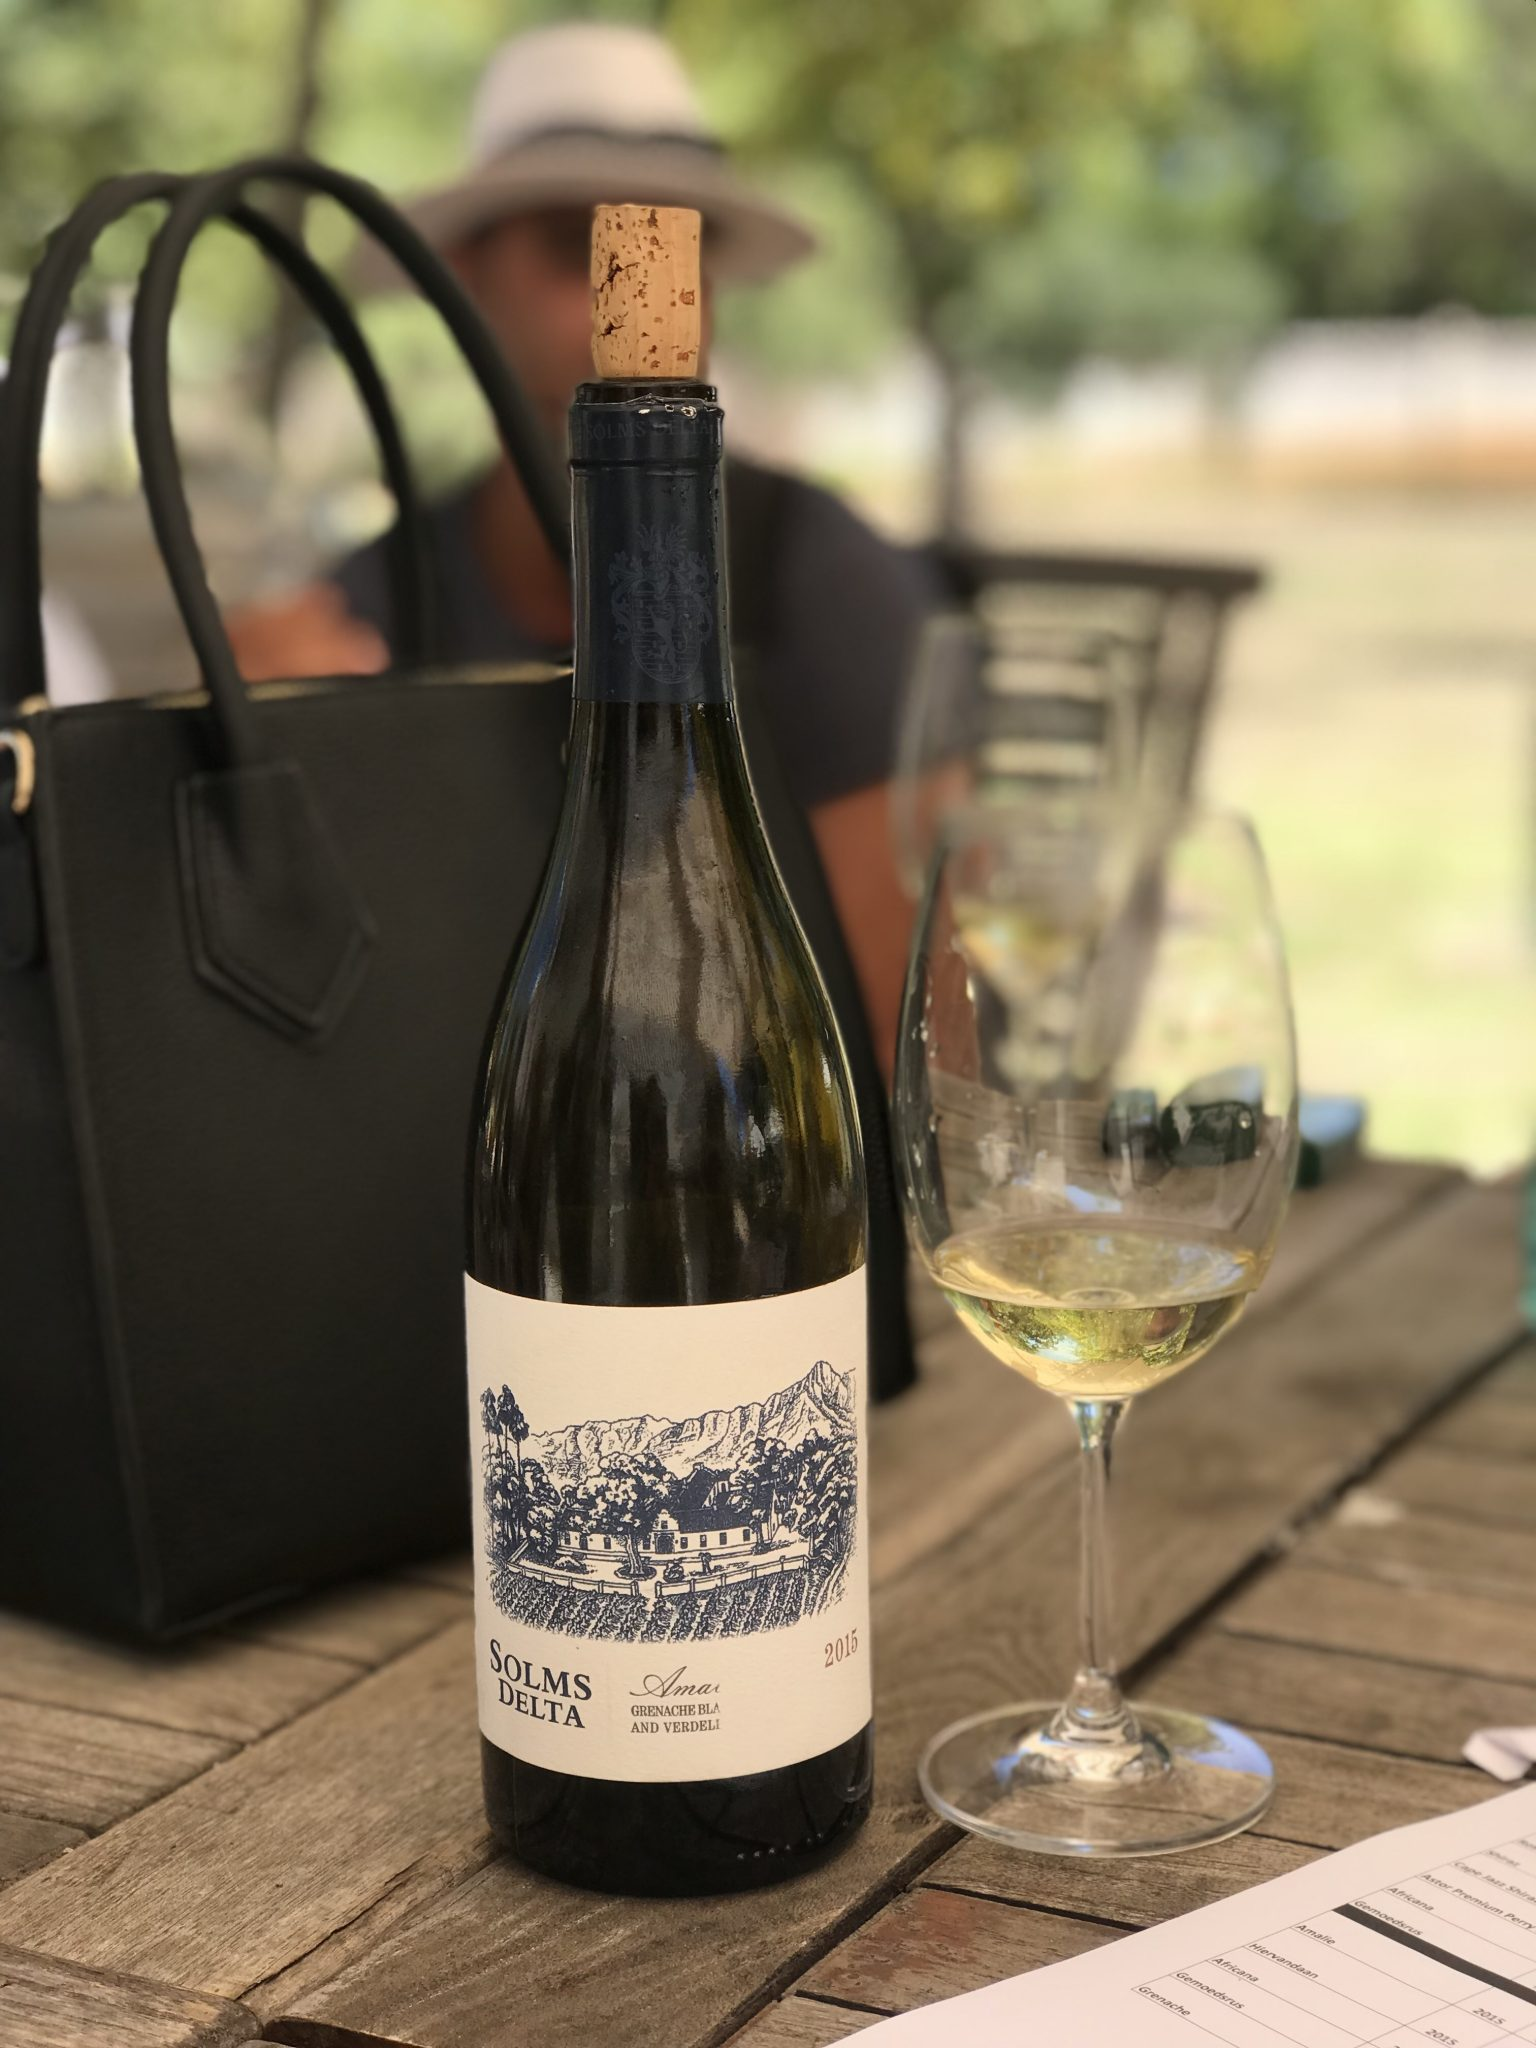 Solms Delta Wine